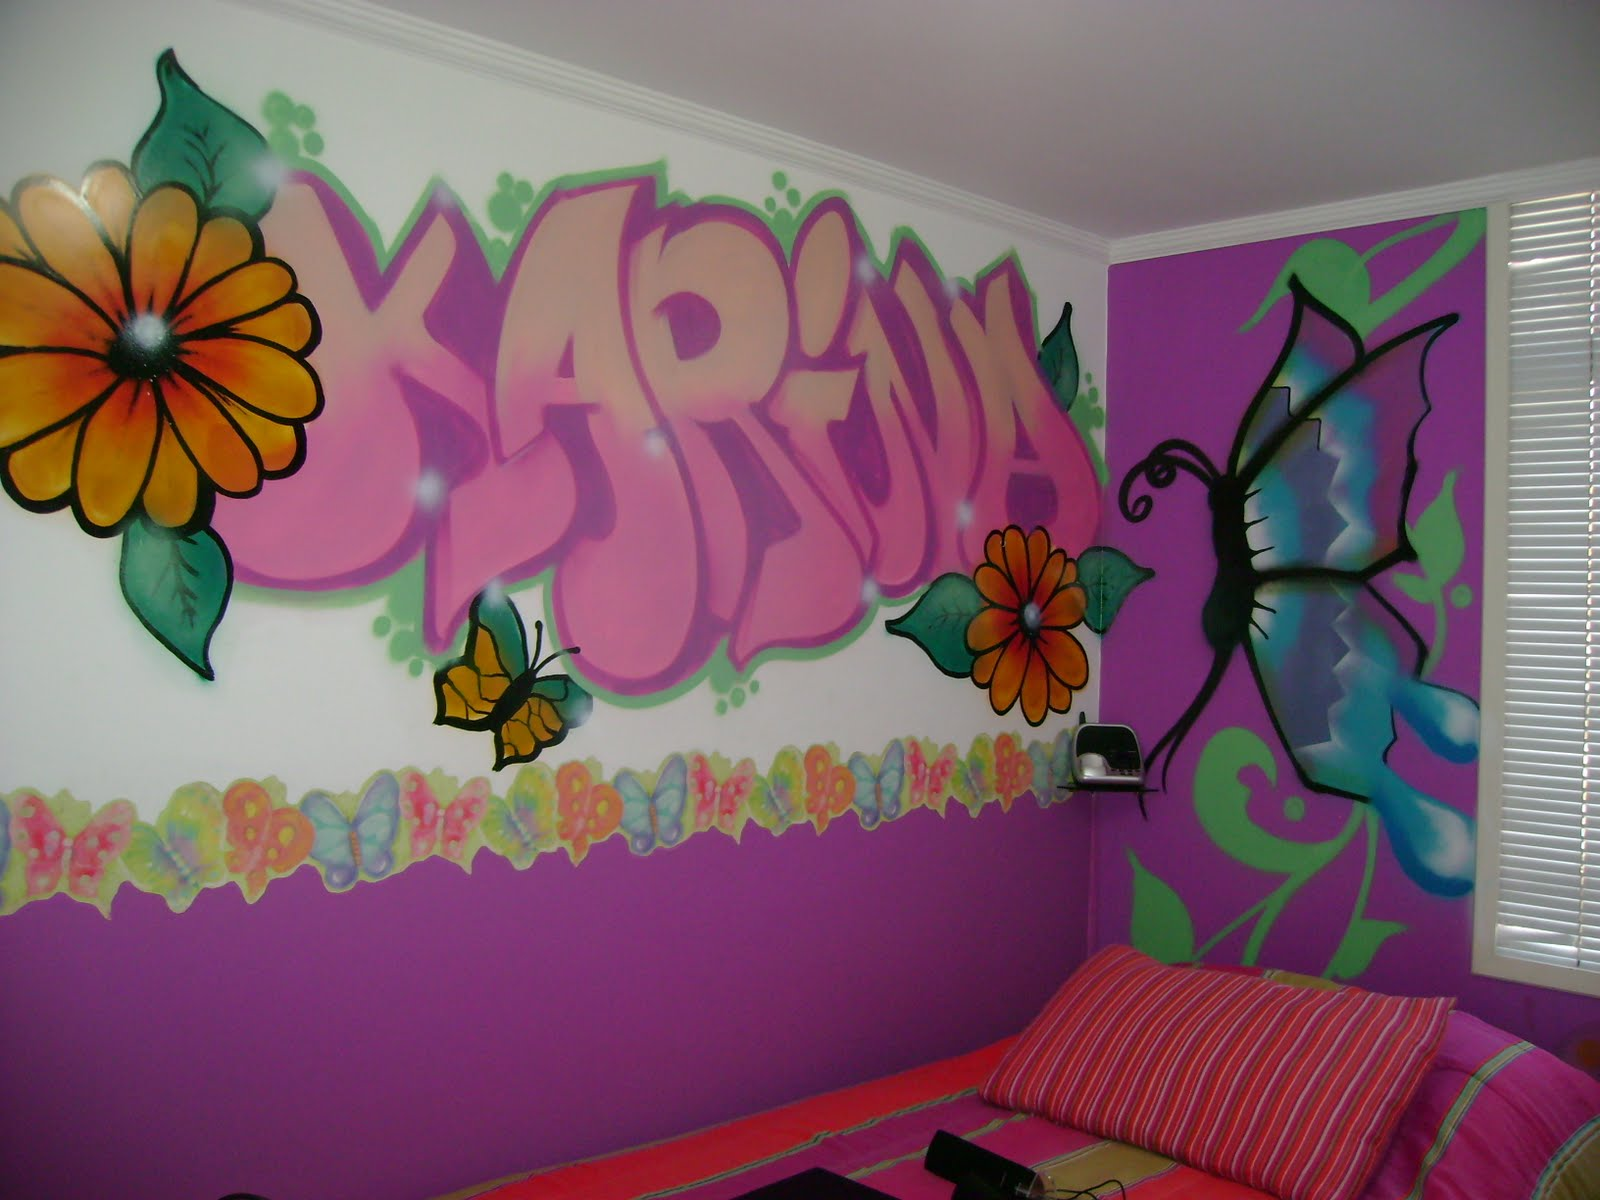 Karina Graffiti Names